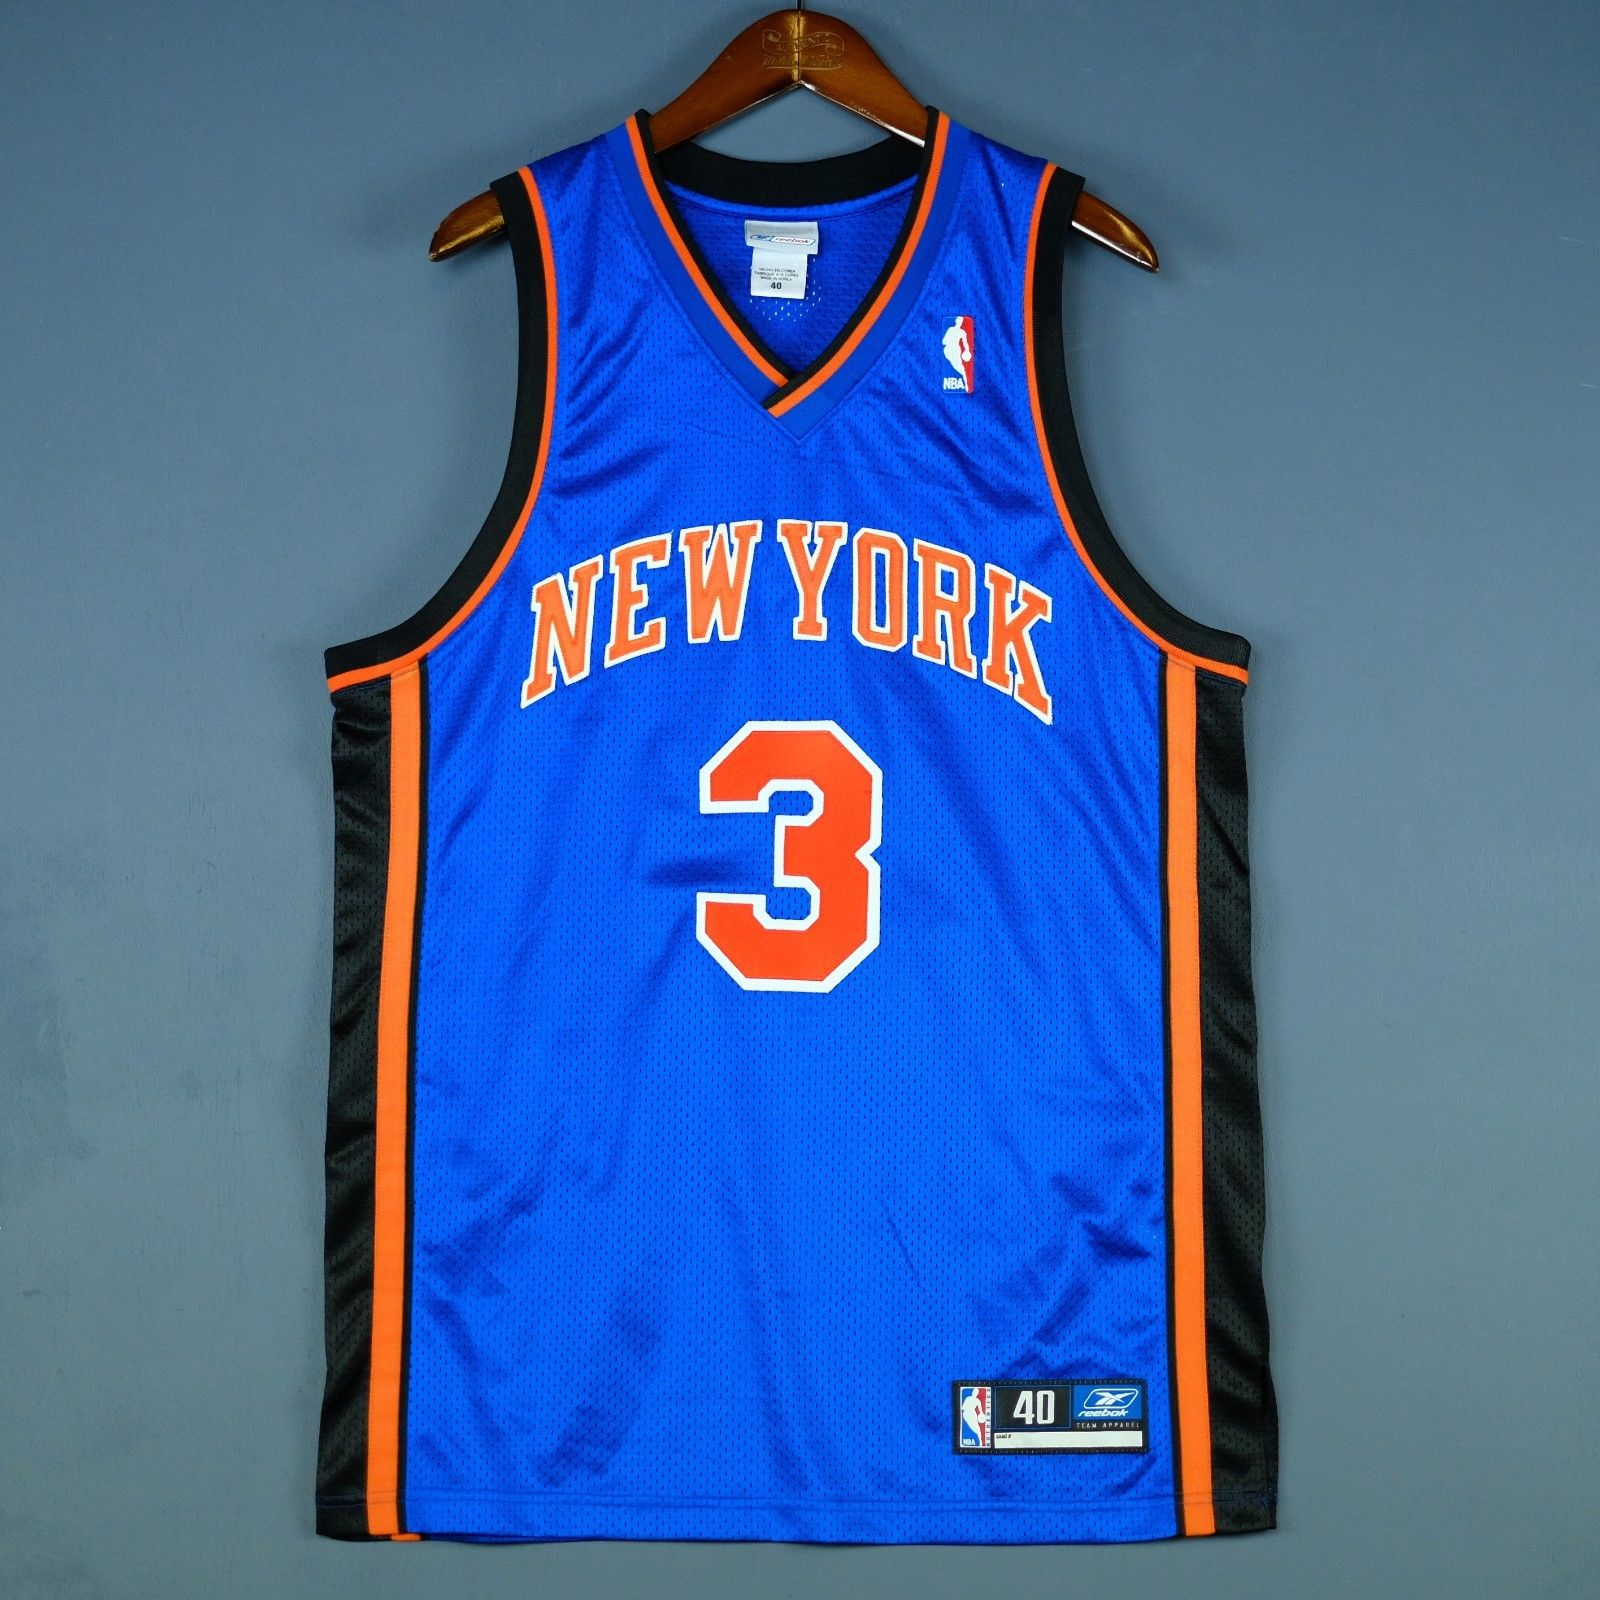 outlet store c8e5b 42d10 promo code new york knicks authentic jersey 00c89 01a25